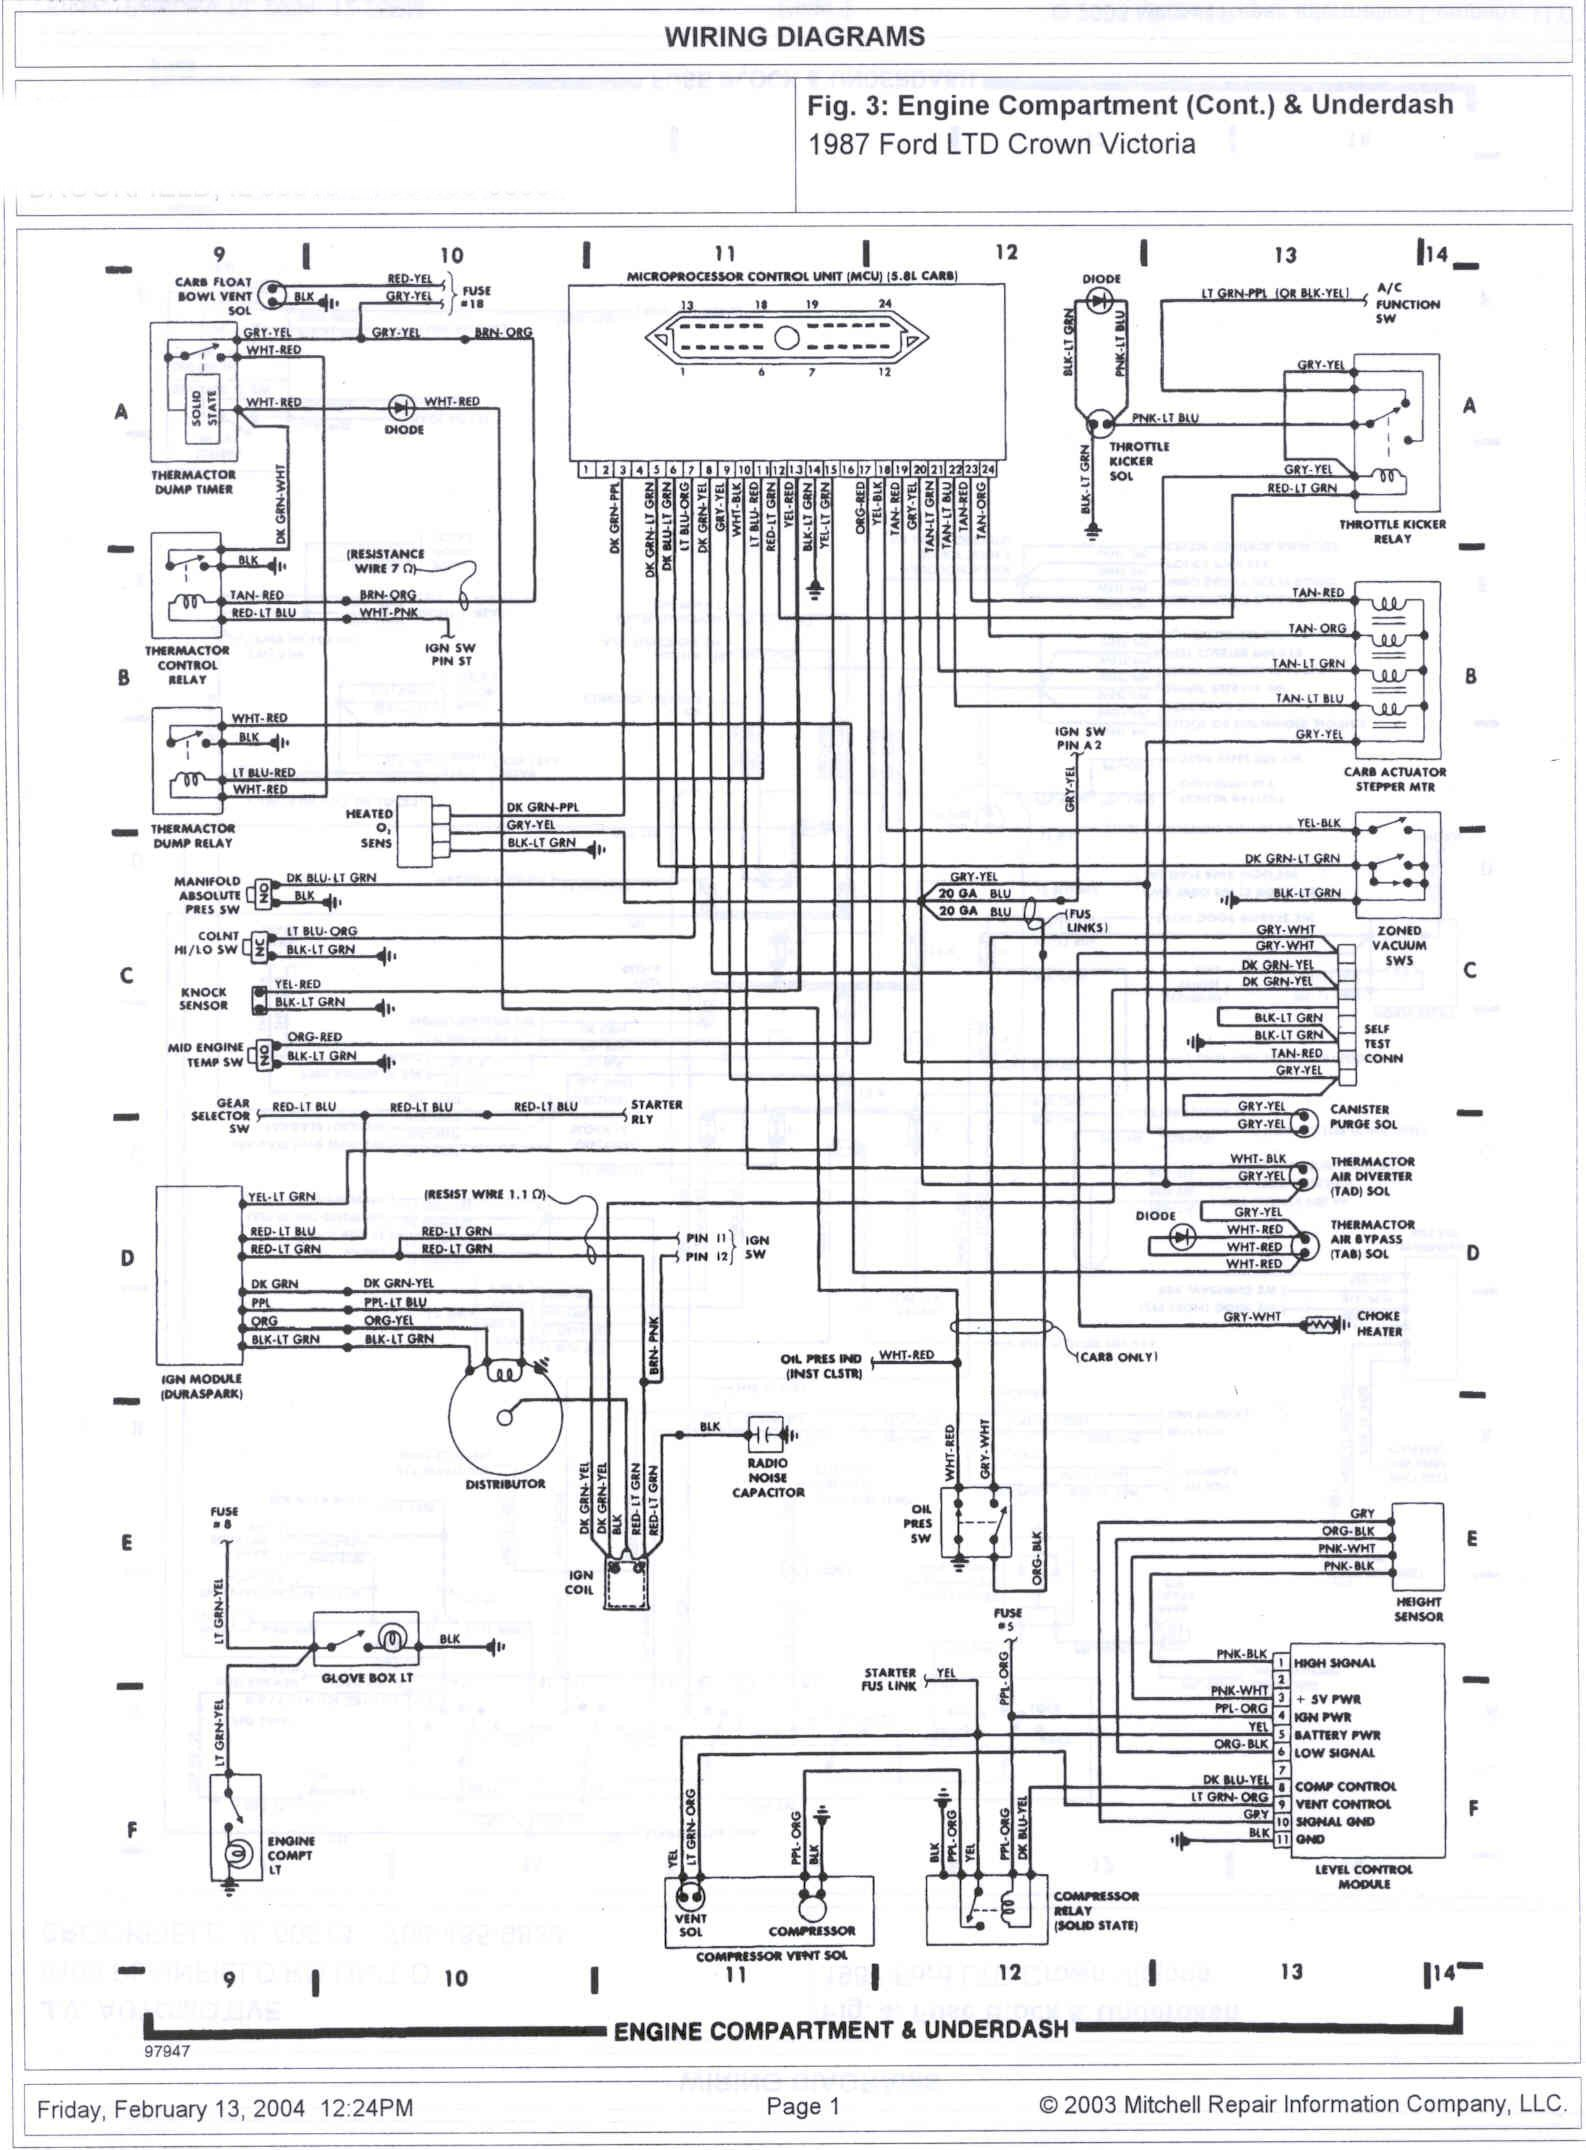 hight resolution of  1986 ford ltd wiring diagram wiring diagram ford crown victoria wiring diagram on 1992 ford